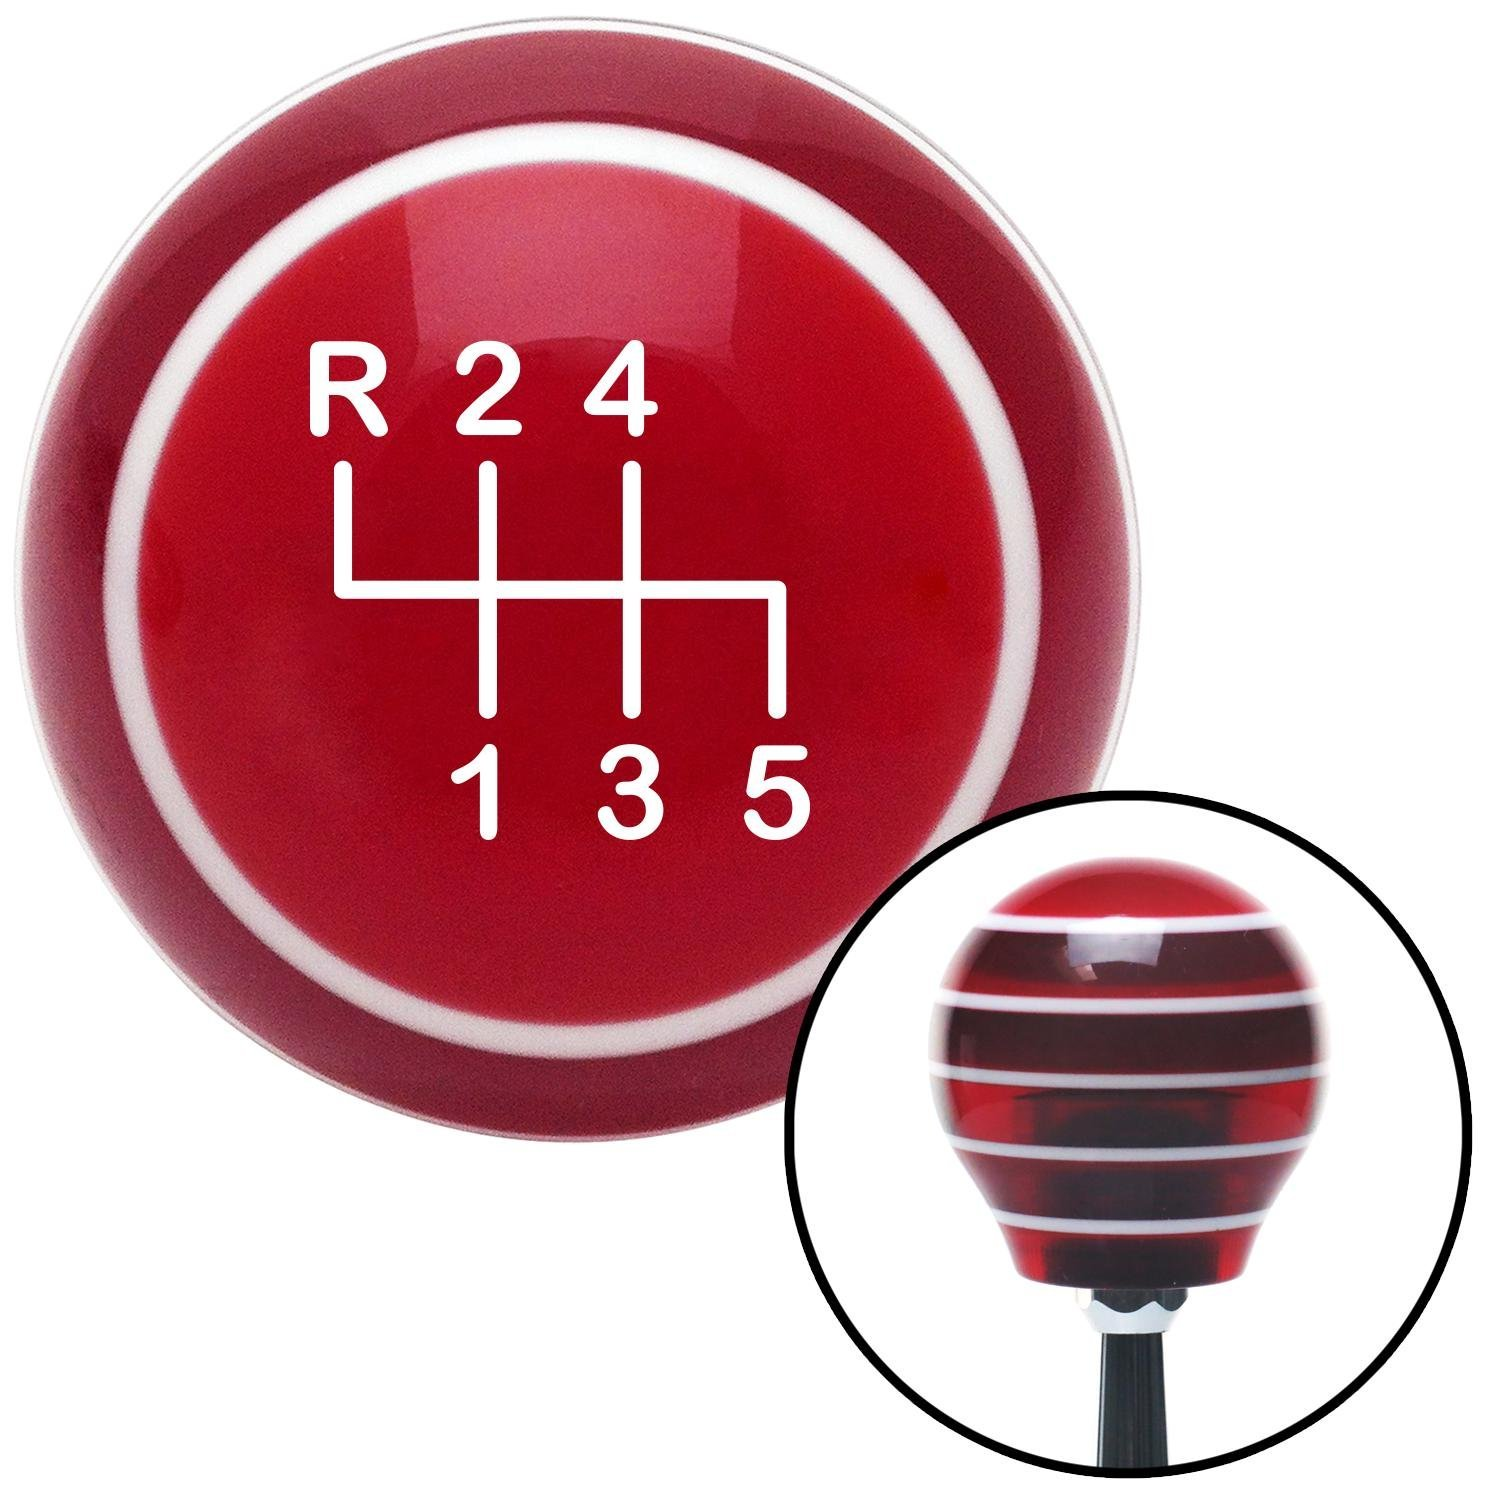 American Shifter 117522 Red Stripe Shift Knob with M16 x 1.5 Insert White Shift Pattern 14n